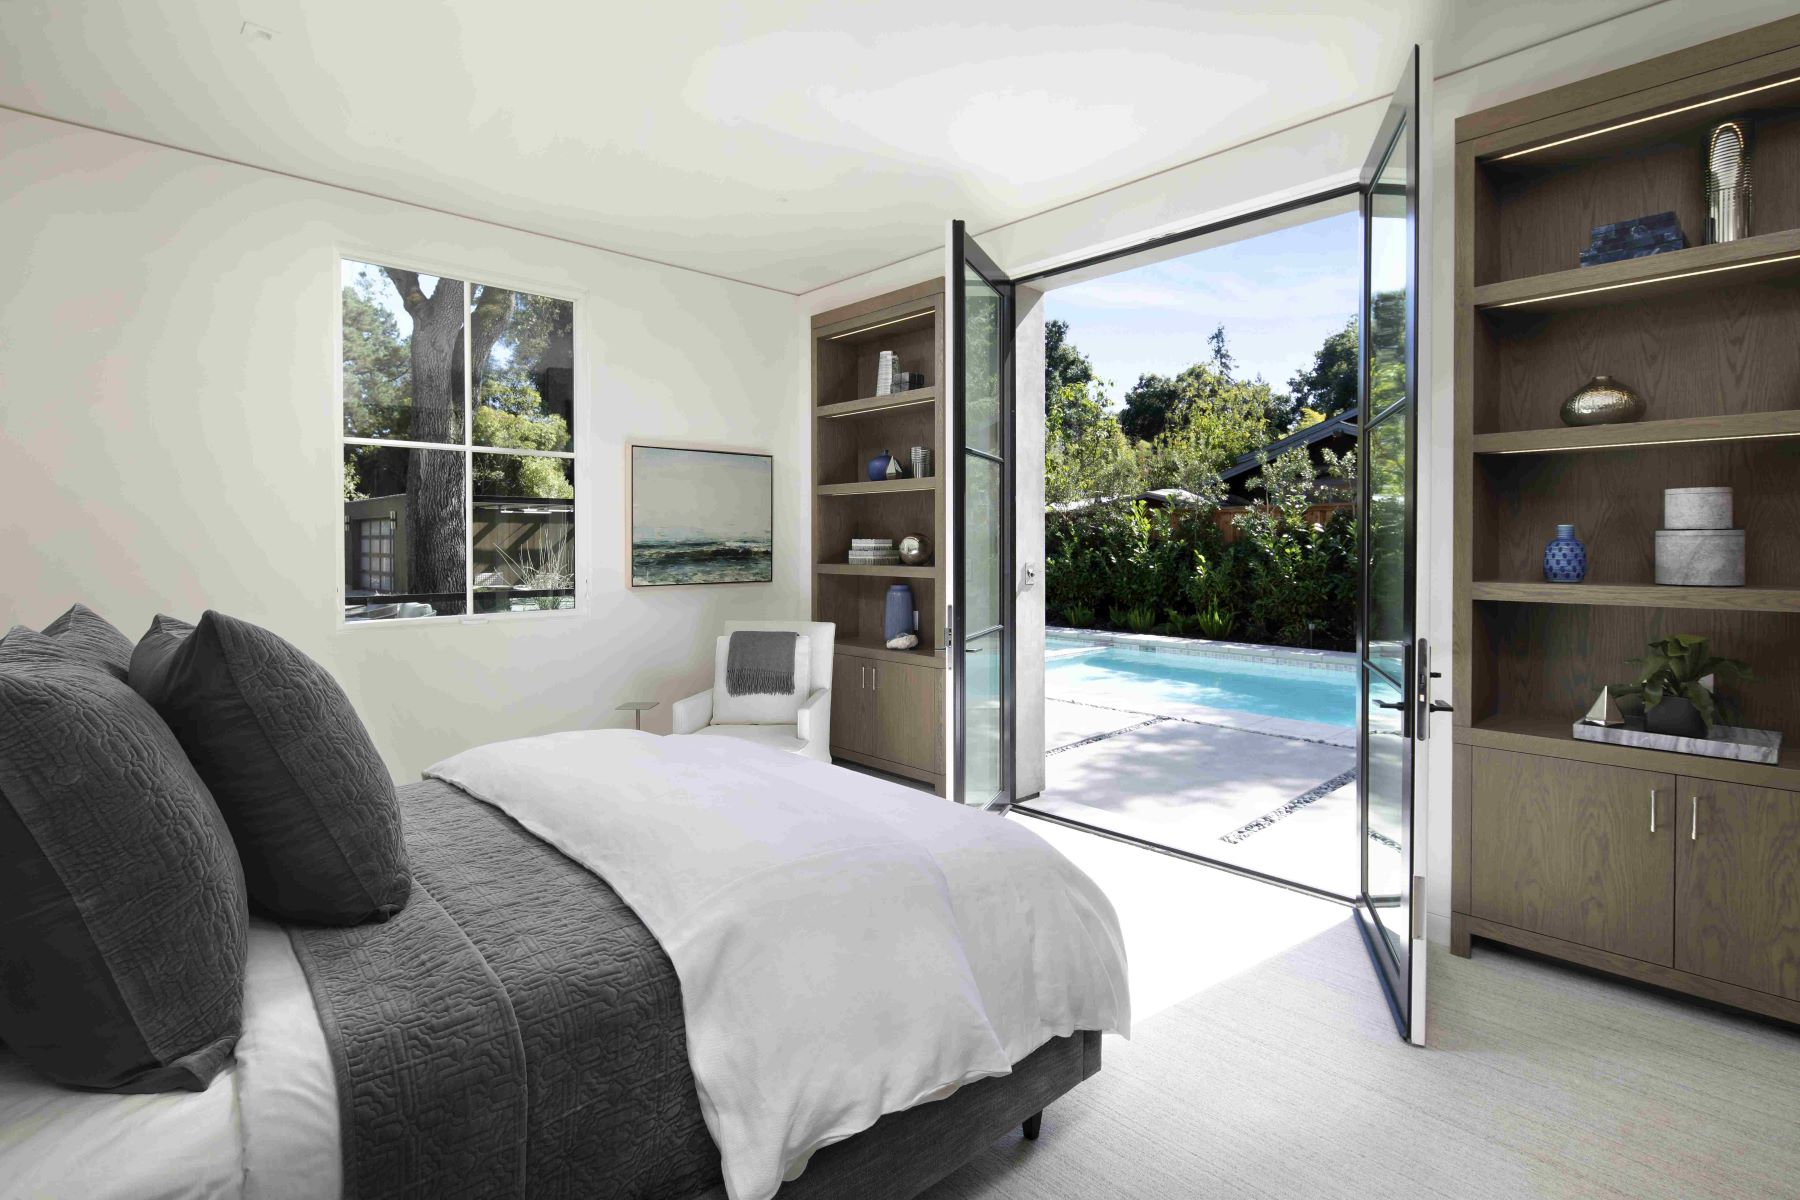 Additional photo for property listing at Silicon Valley Contemporary 1500 Cowper St, Palo Alto, Californie 94301 États-Unis